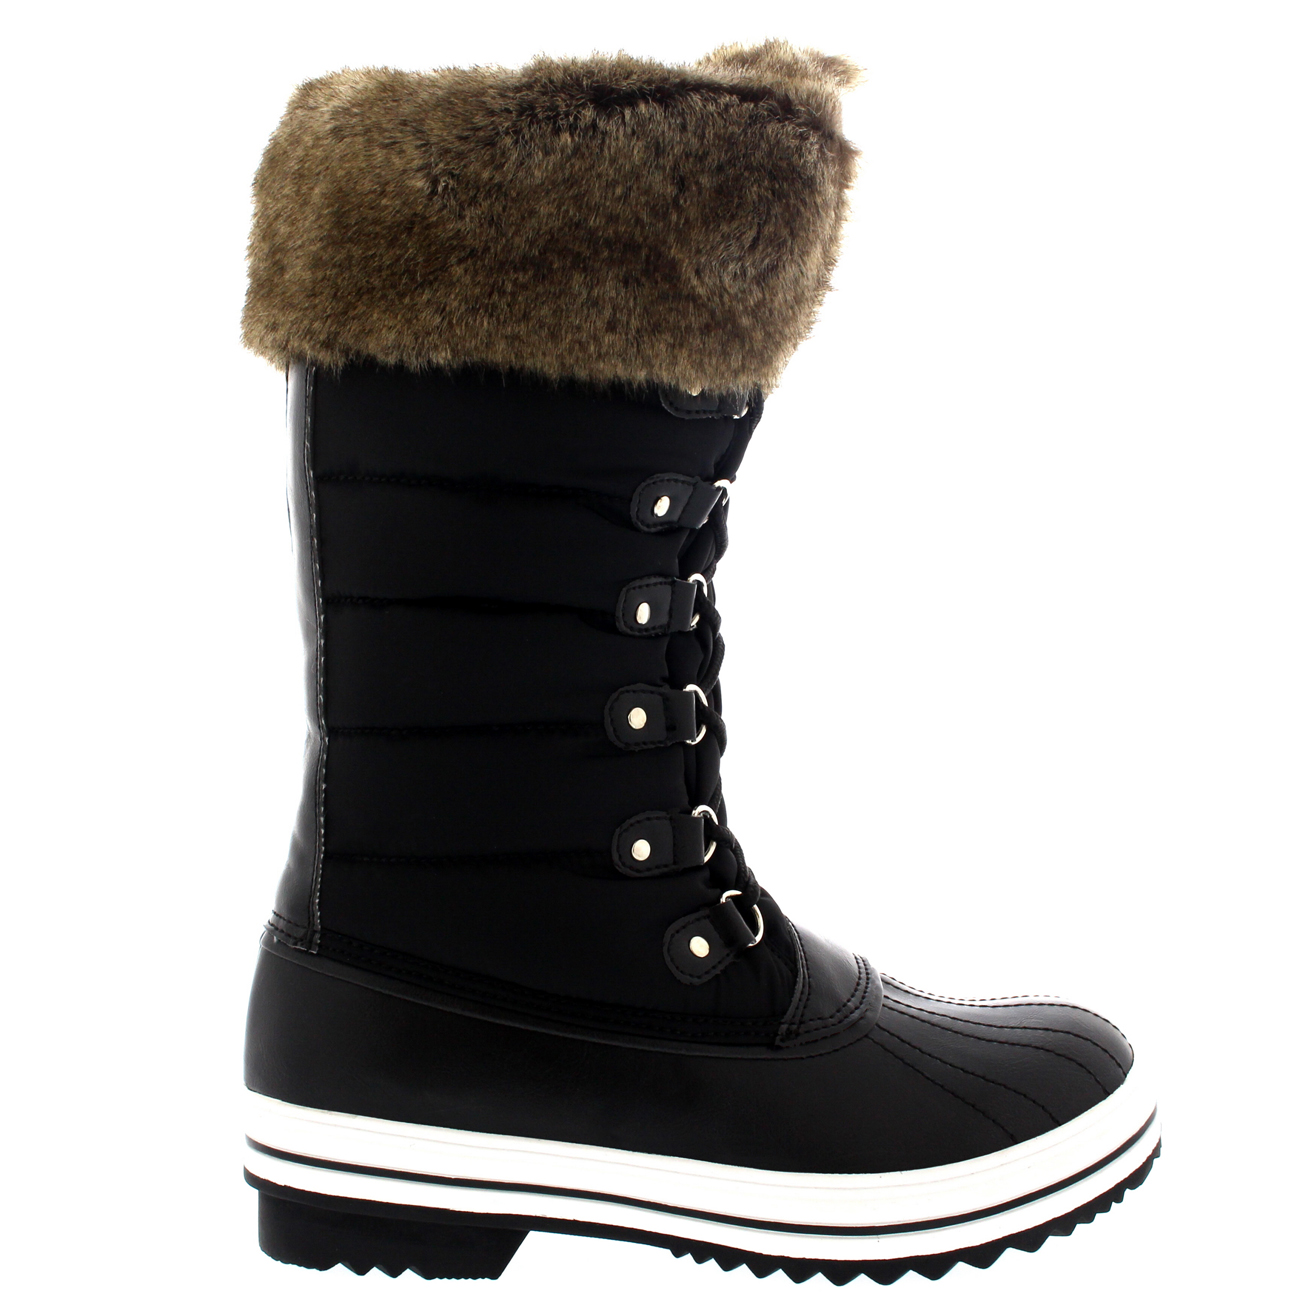 Muck Winter Boots - Cr Boot